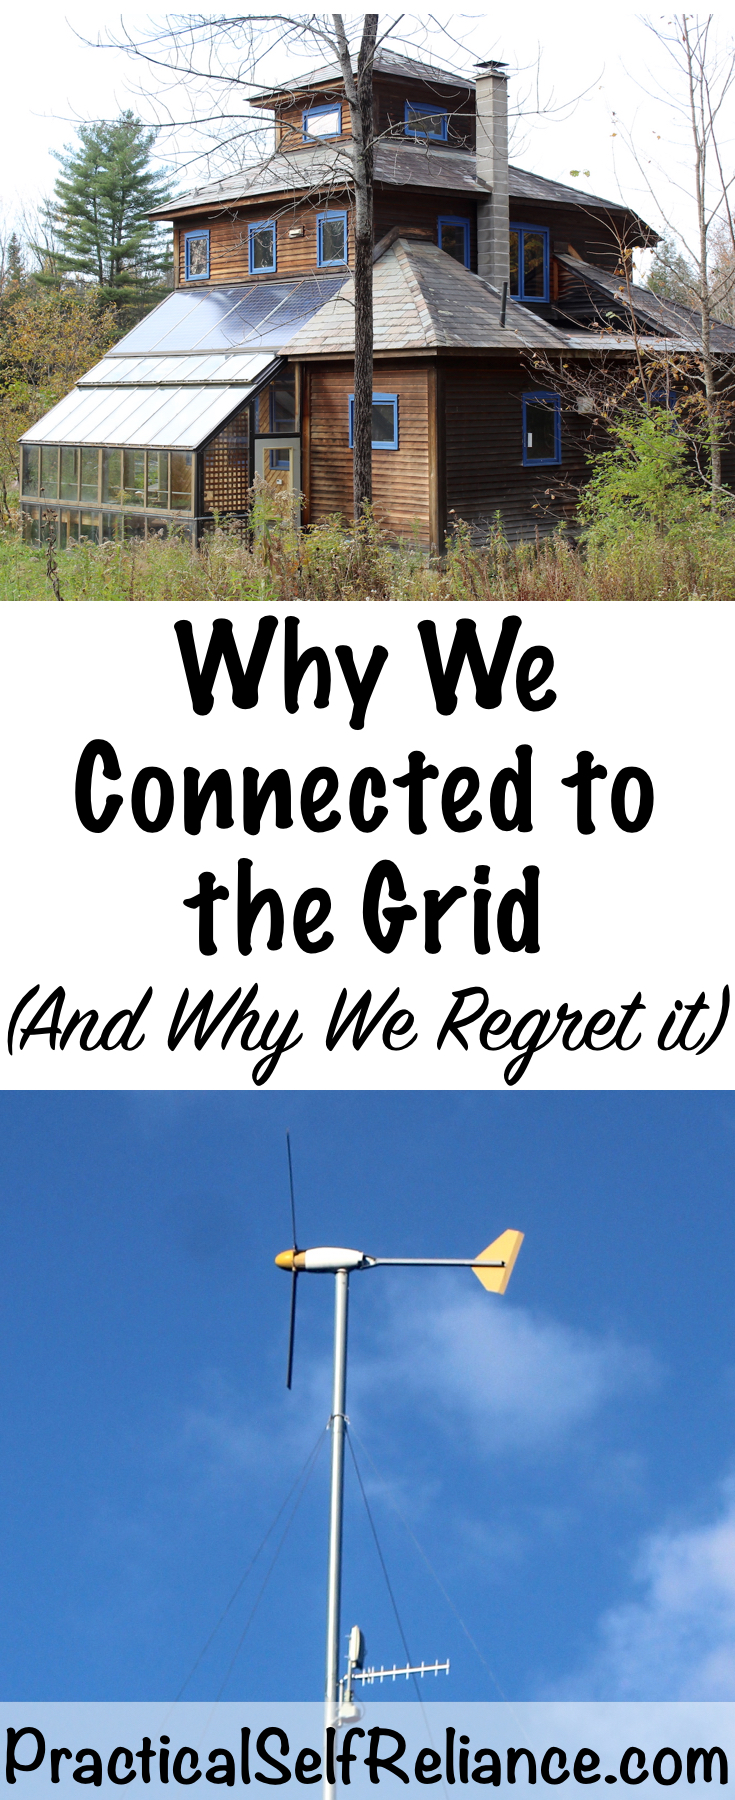 Why We Connected to the grid (and why we regret it)